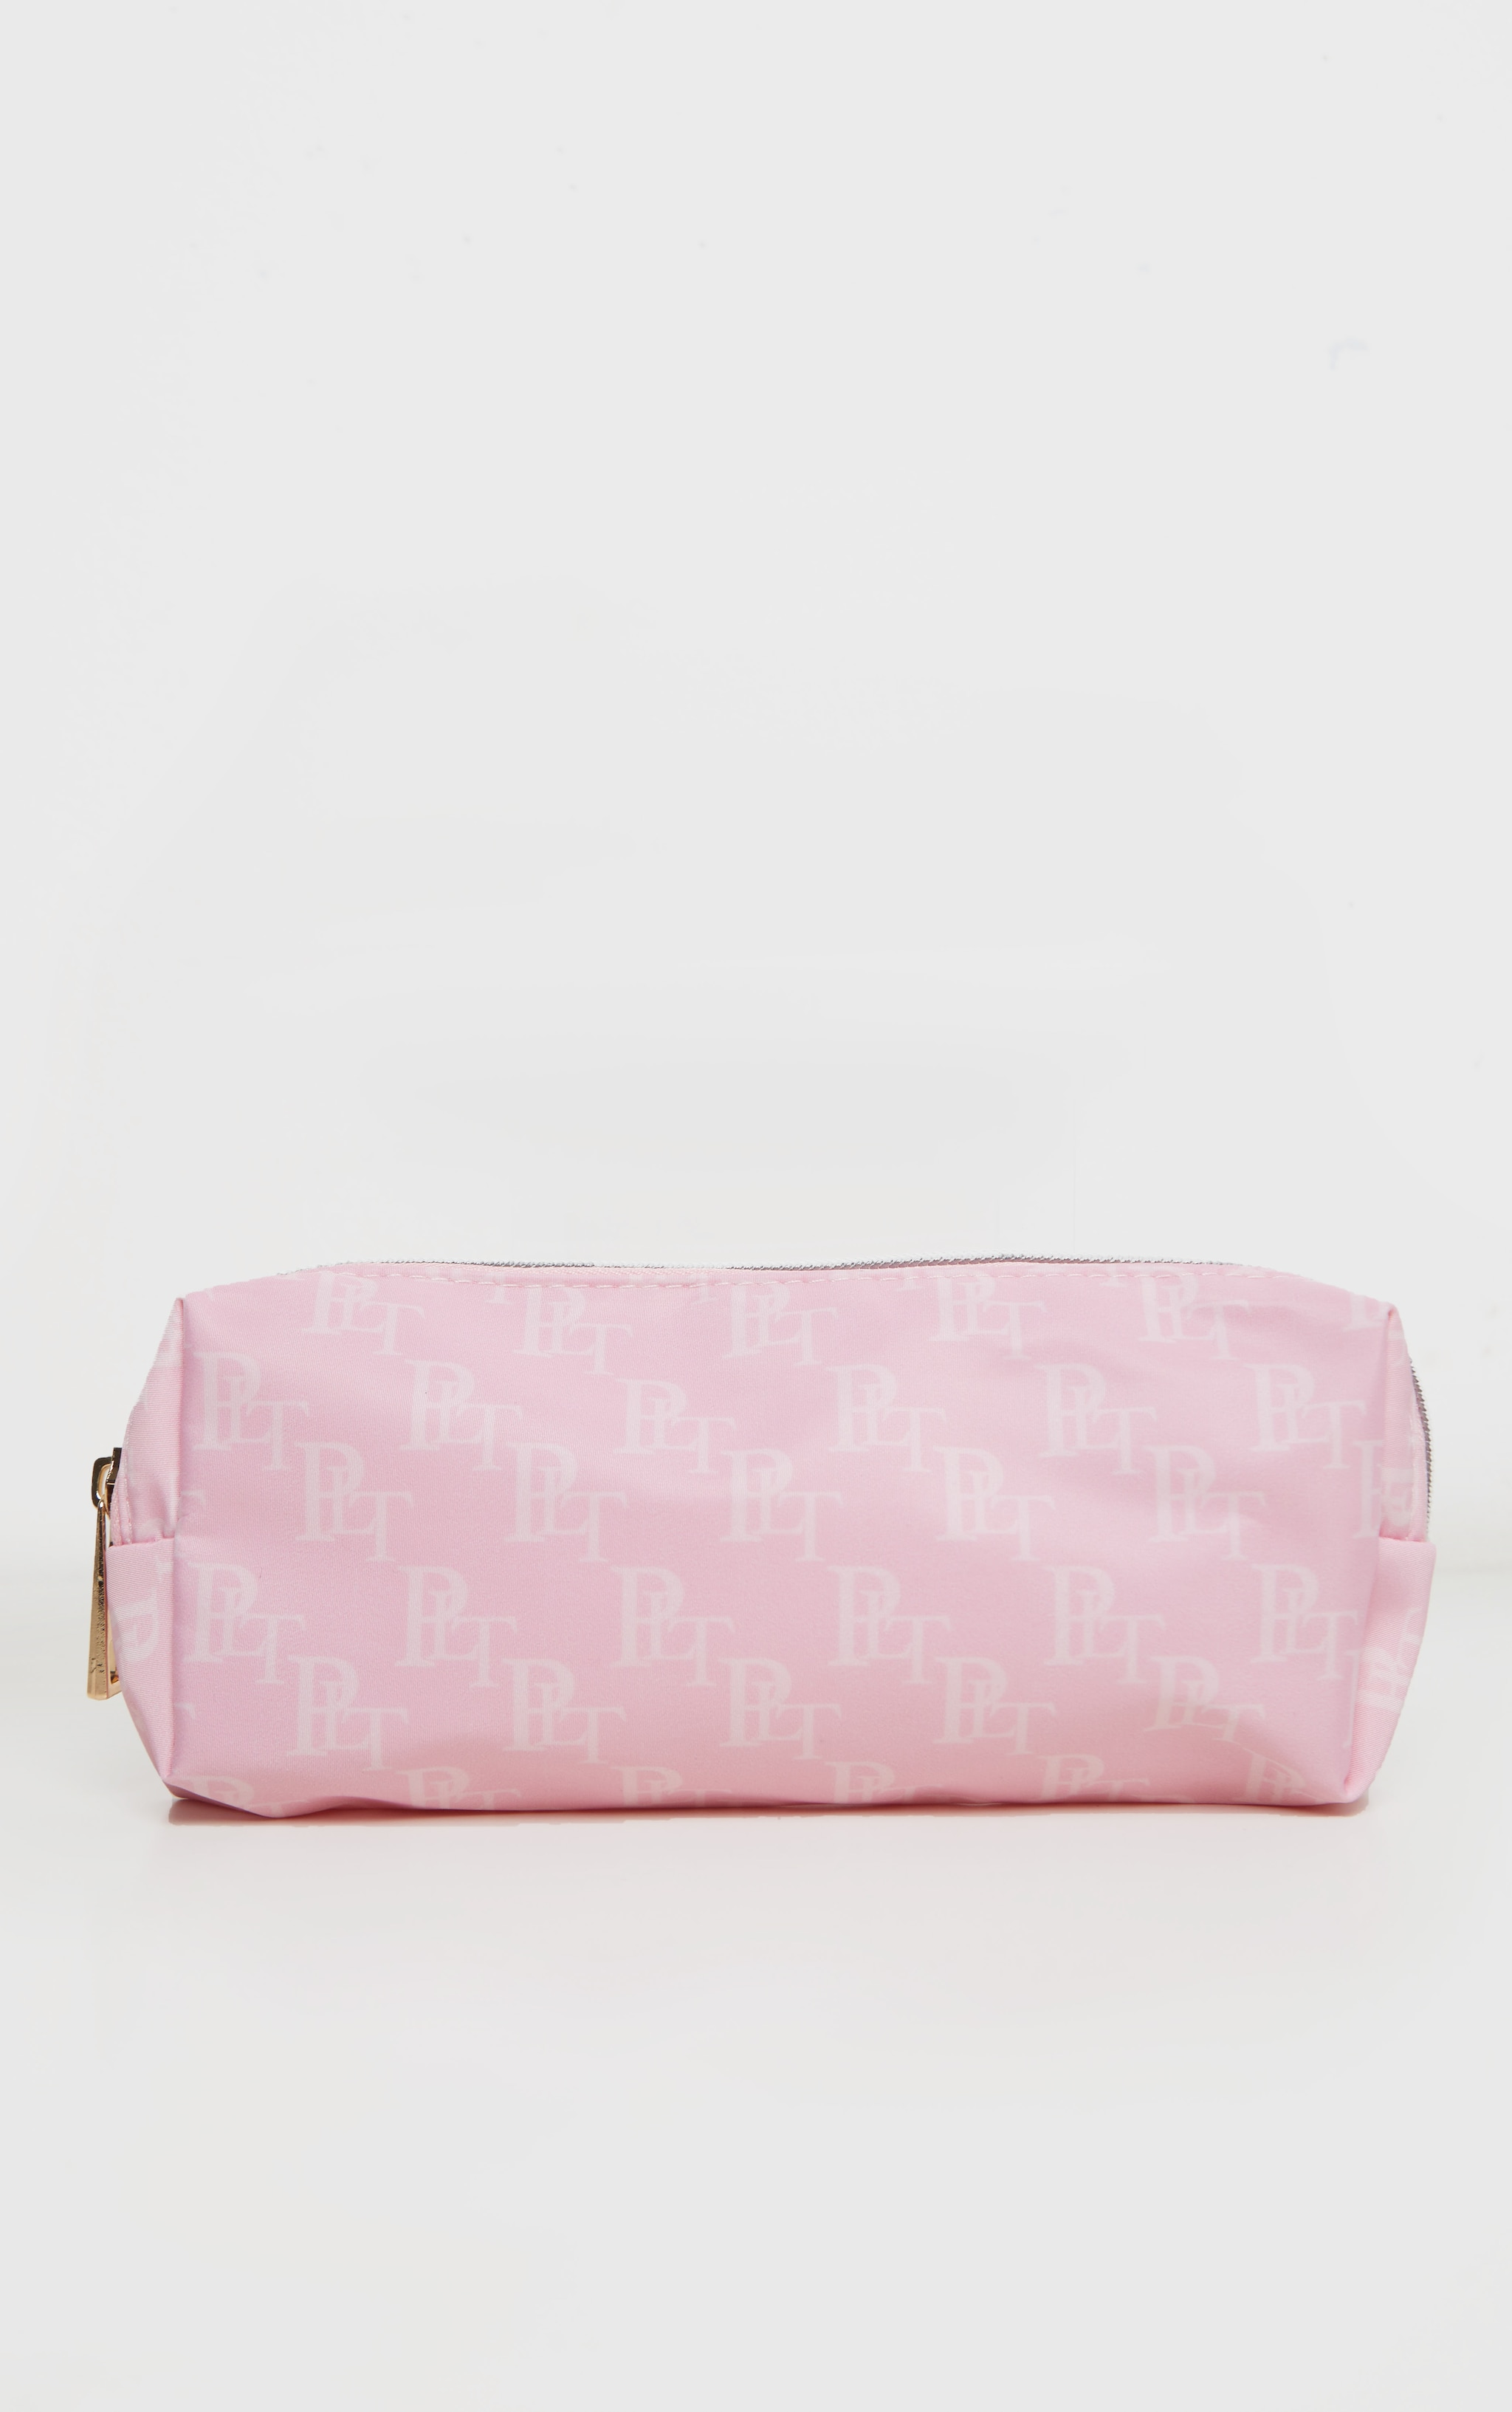 PRETTYLITTLETHING Logo Pink Pencil Case 2